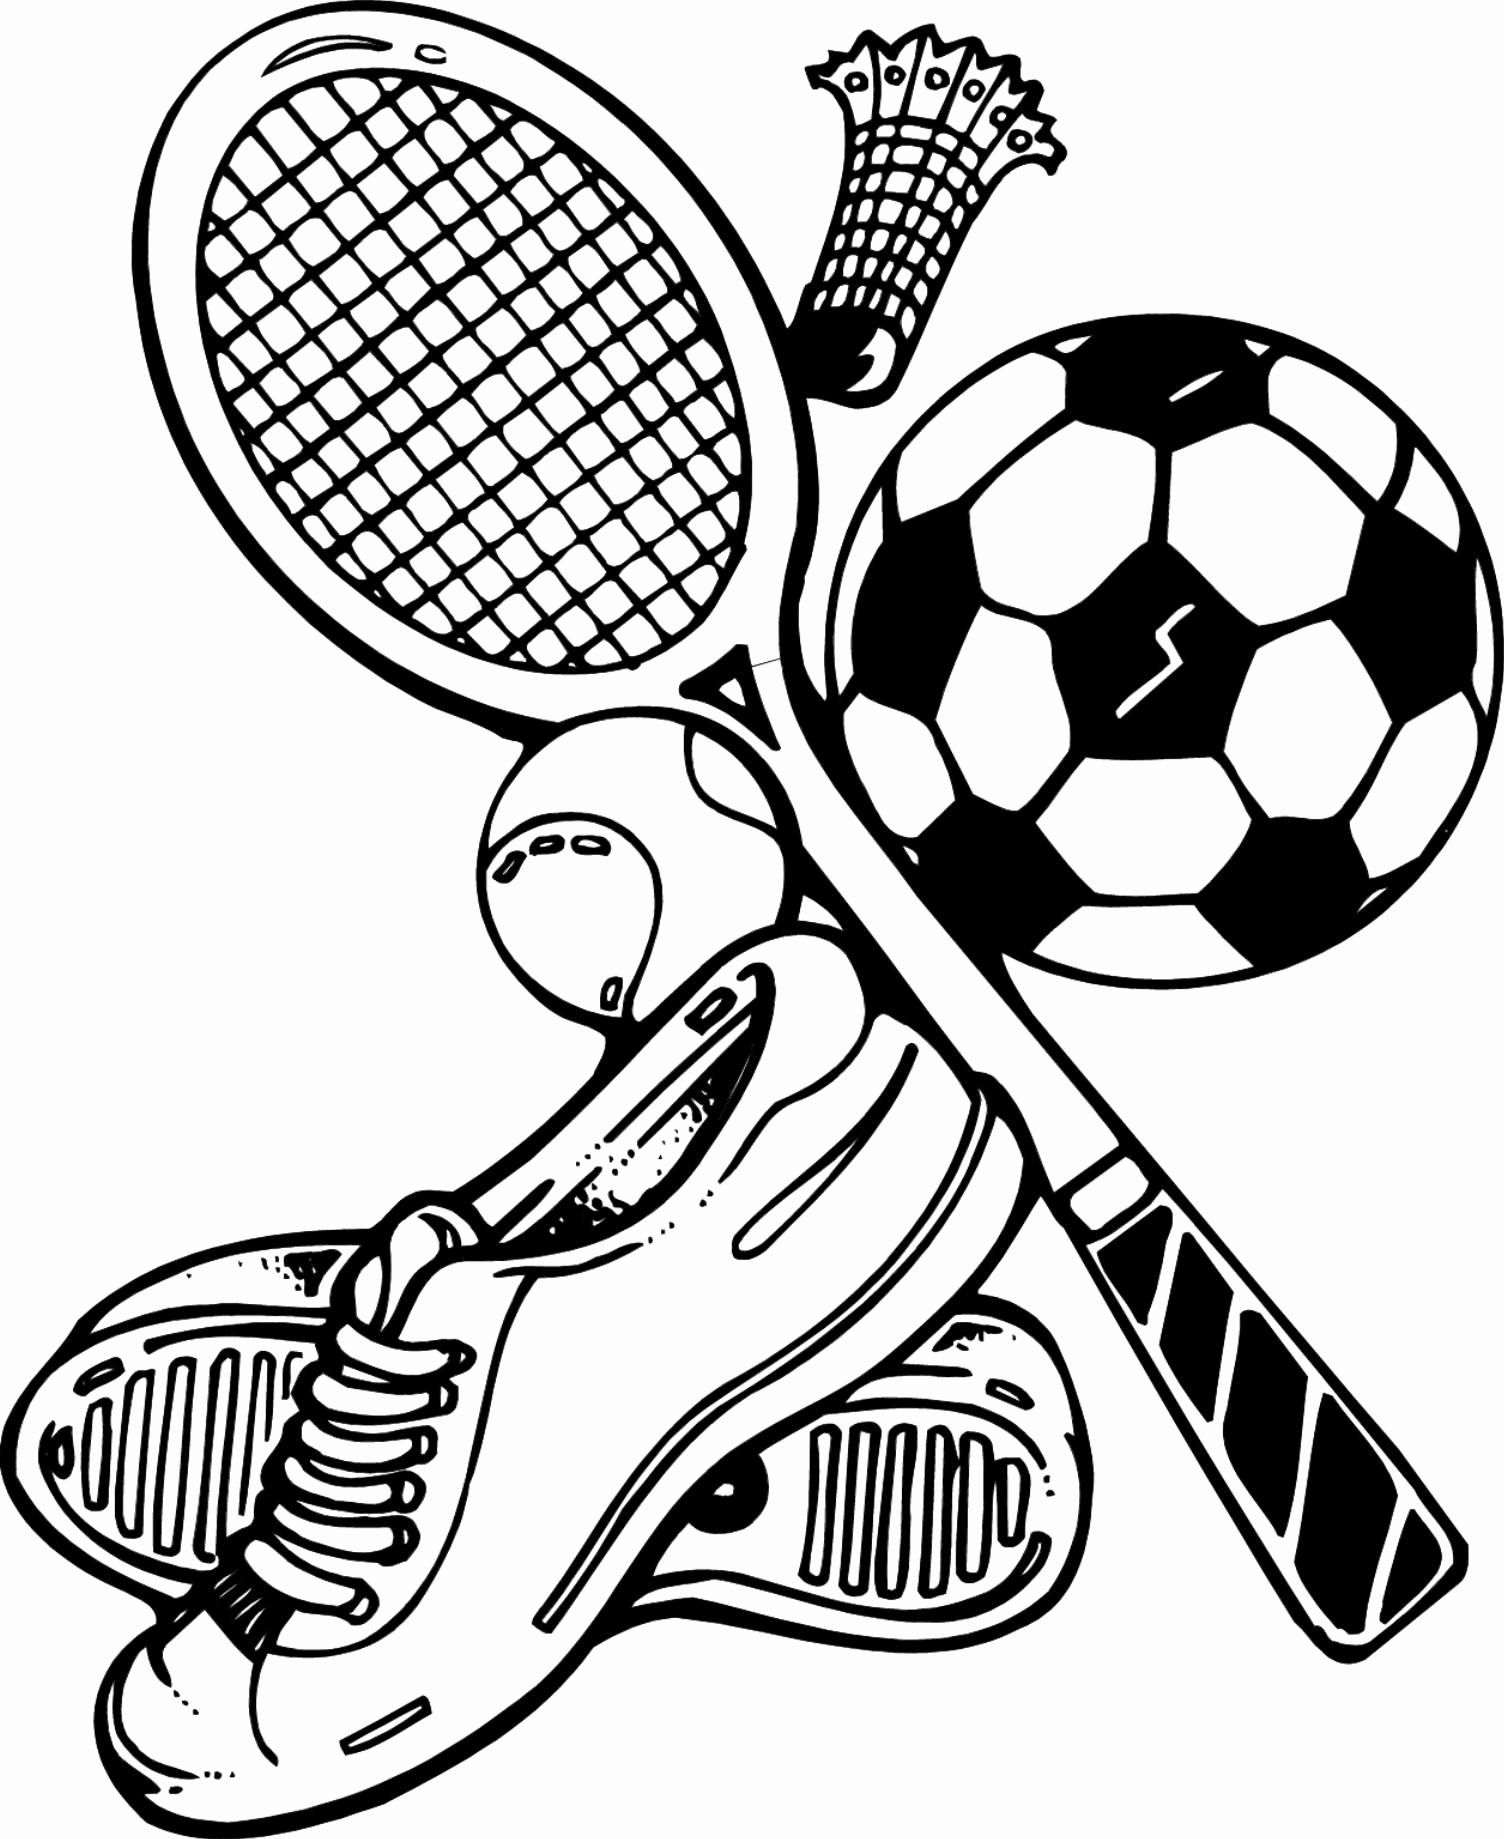 Sports Coloring Pages For Kids Luxury Cool Kids Sports Coloring Pages Free Download Sports Coloring Pages Drawing Pictures For Colouring Coloring Pages